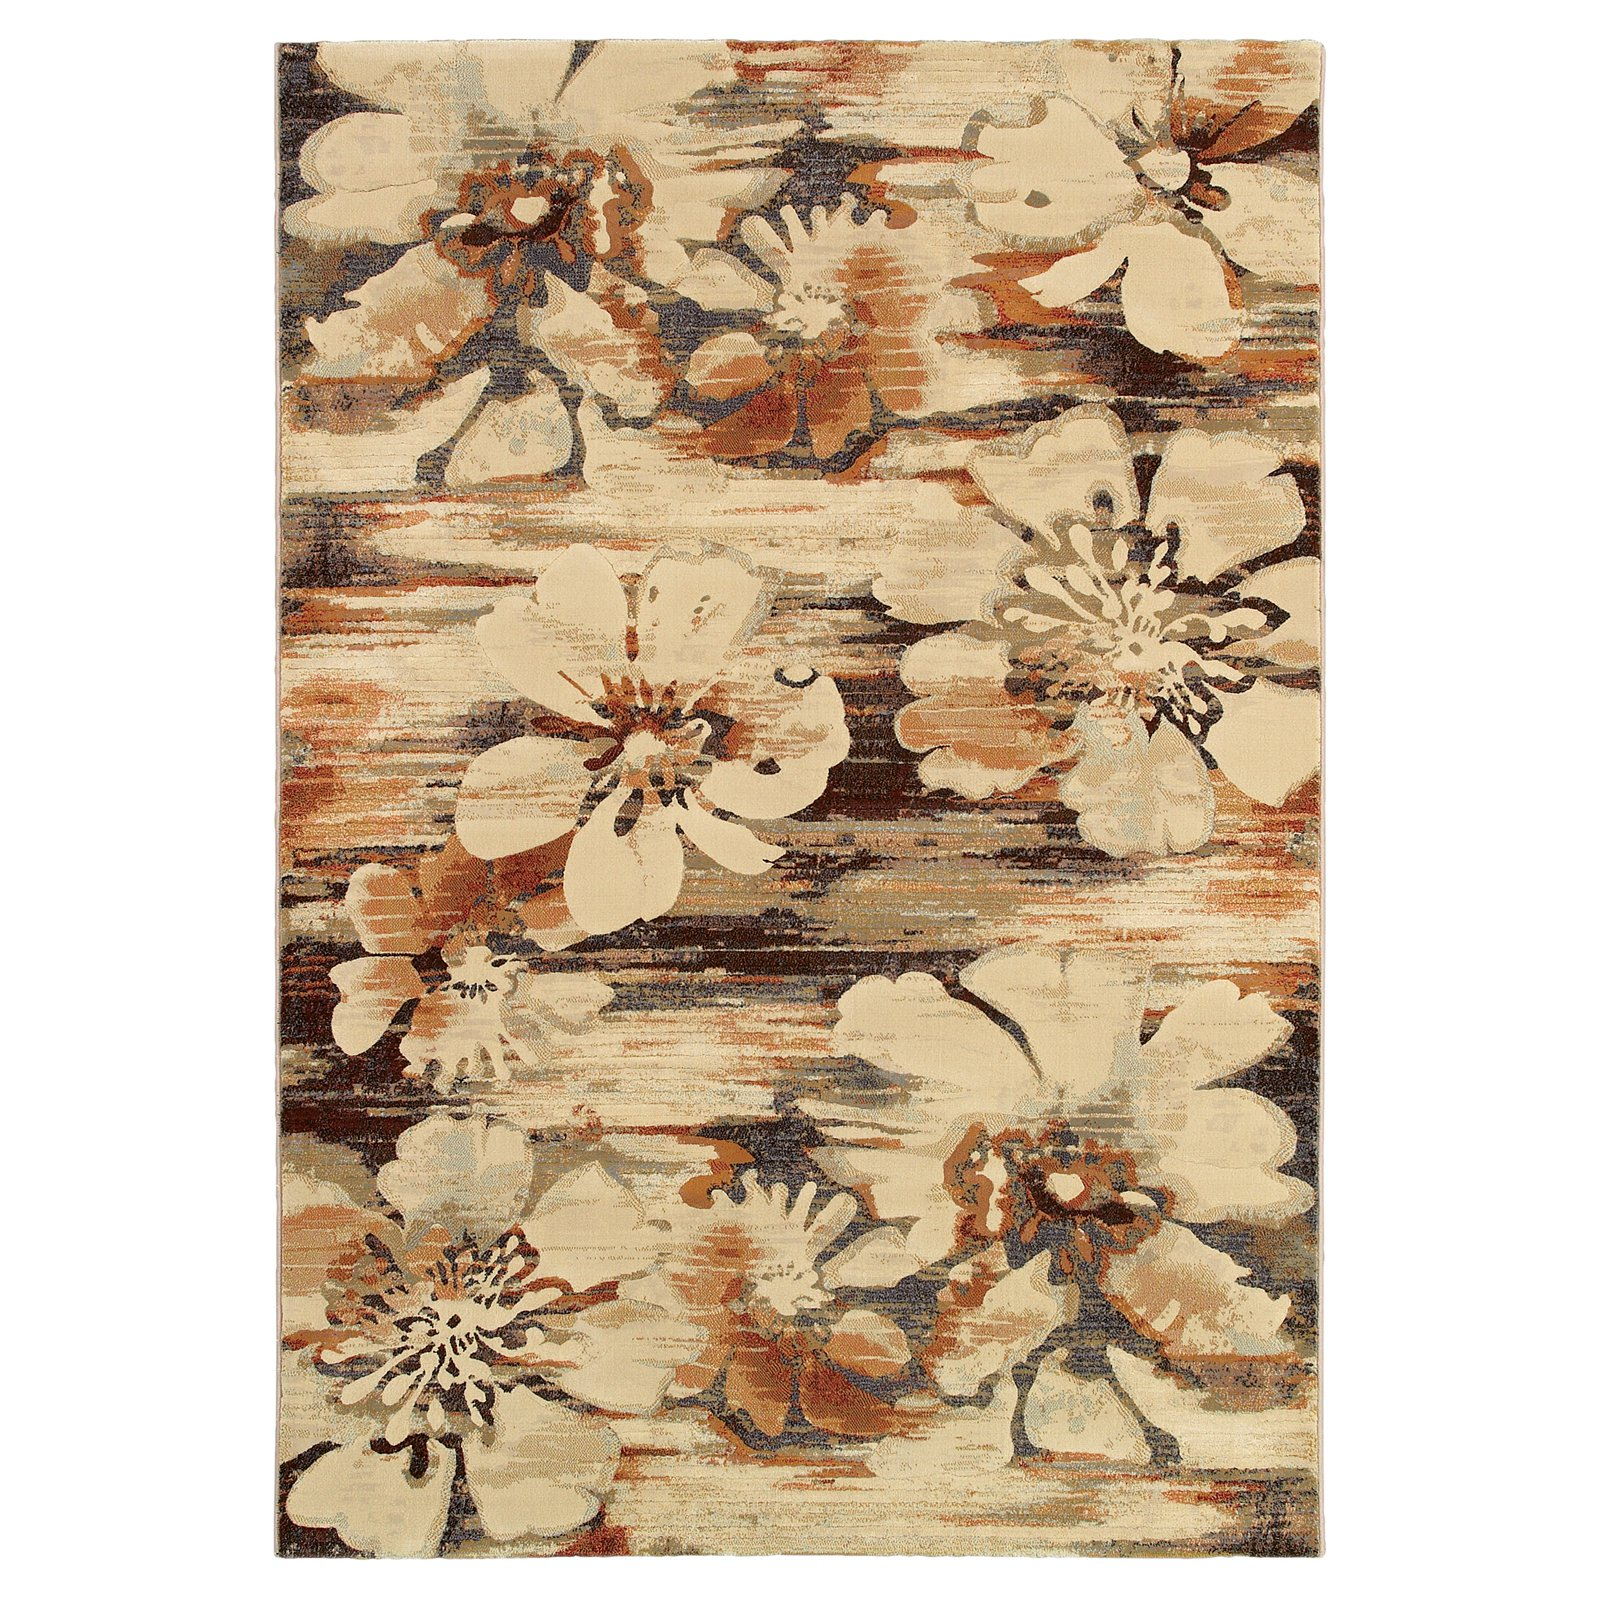 Couristan Easton Mosaic Florals Rug, Multi-Colored